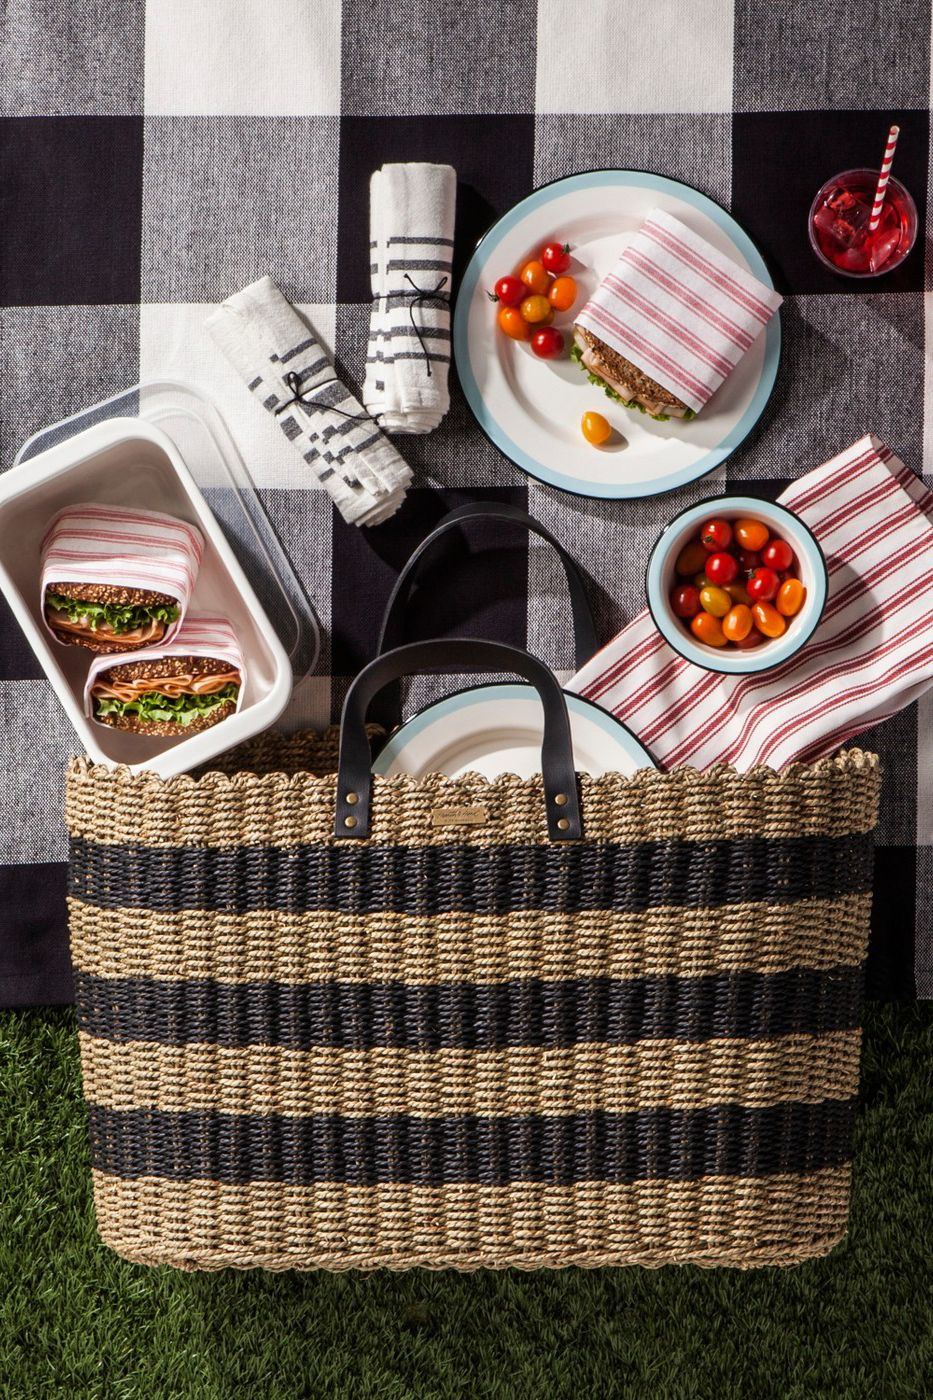 Joanna Gaines Summer Collection at Target  Hearth and